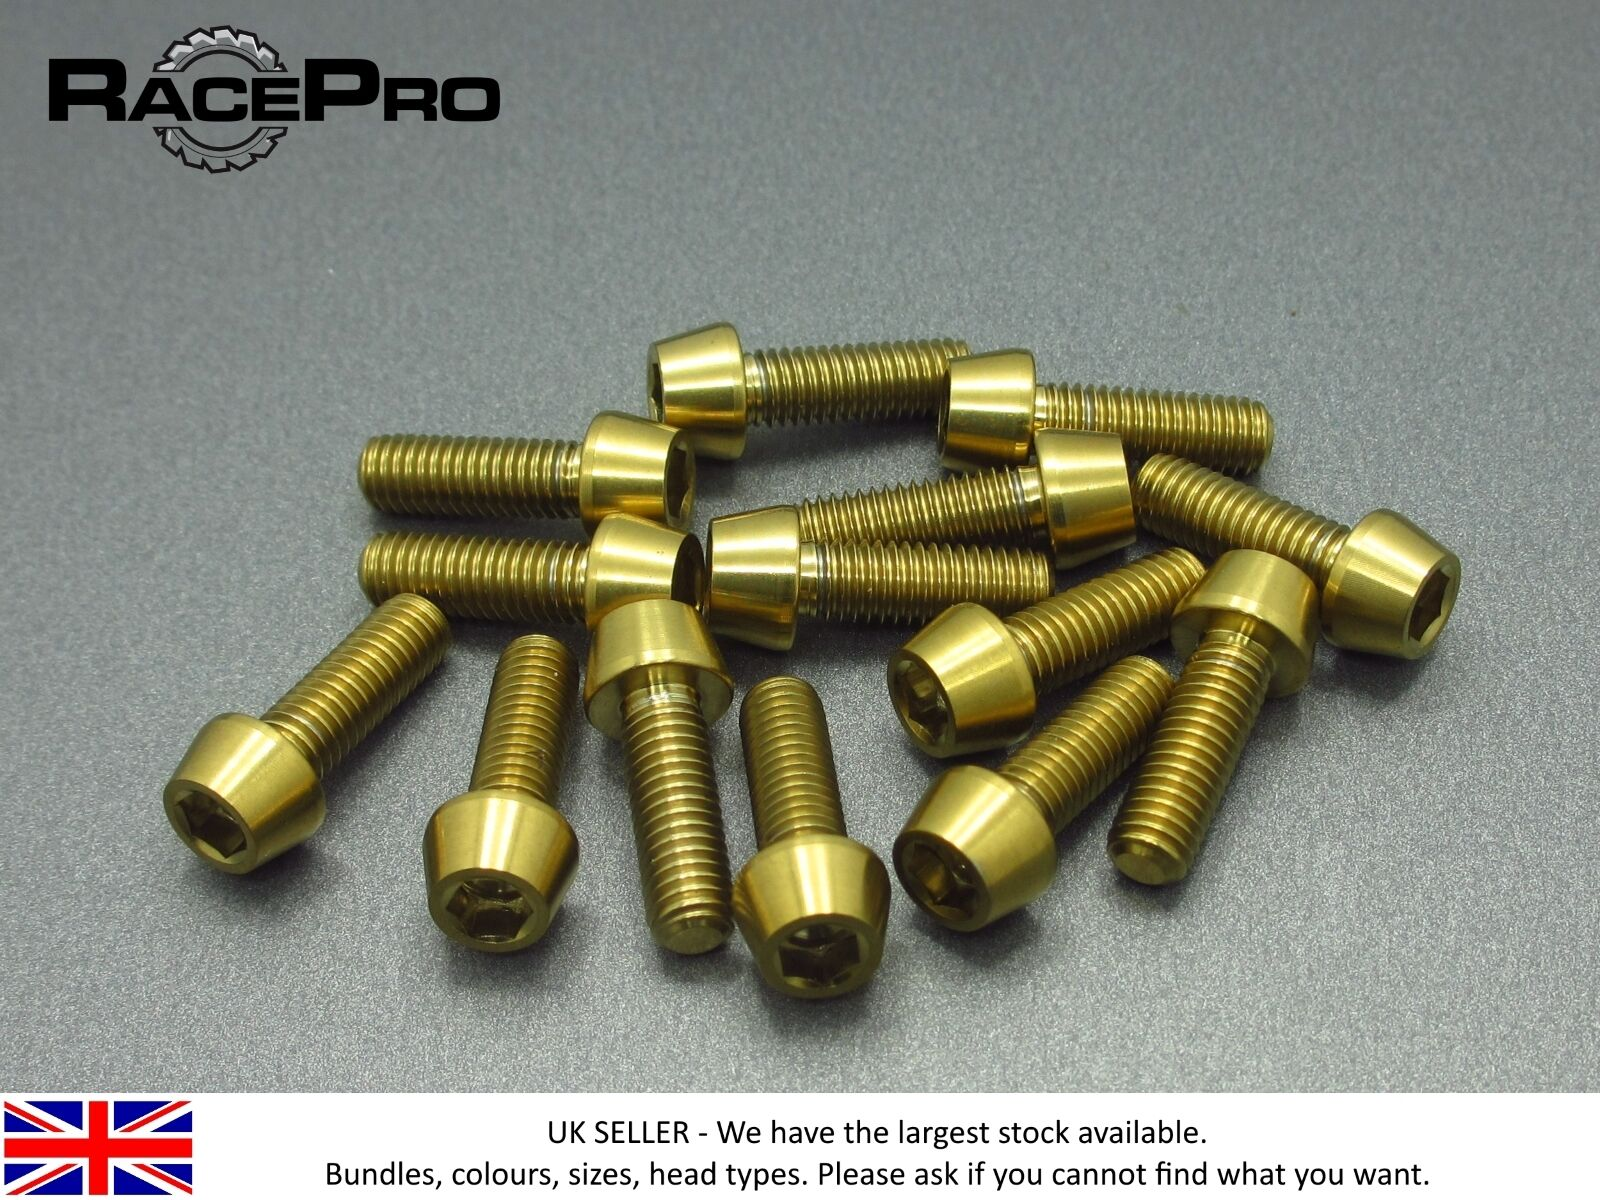 RacePro - 20x Titanium Tapered Bolt GR5 - M6 x 30mm x 1mm - Allen Head - gold